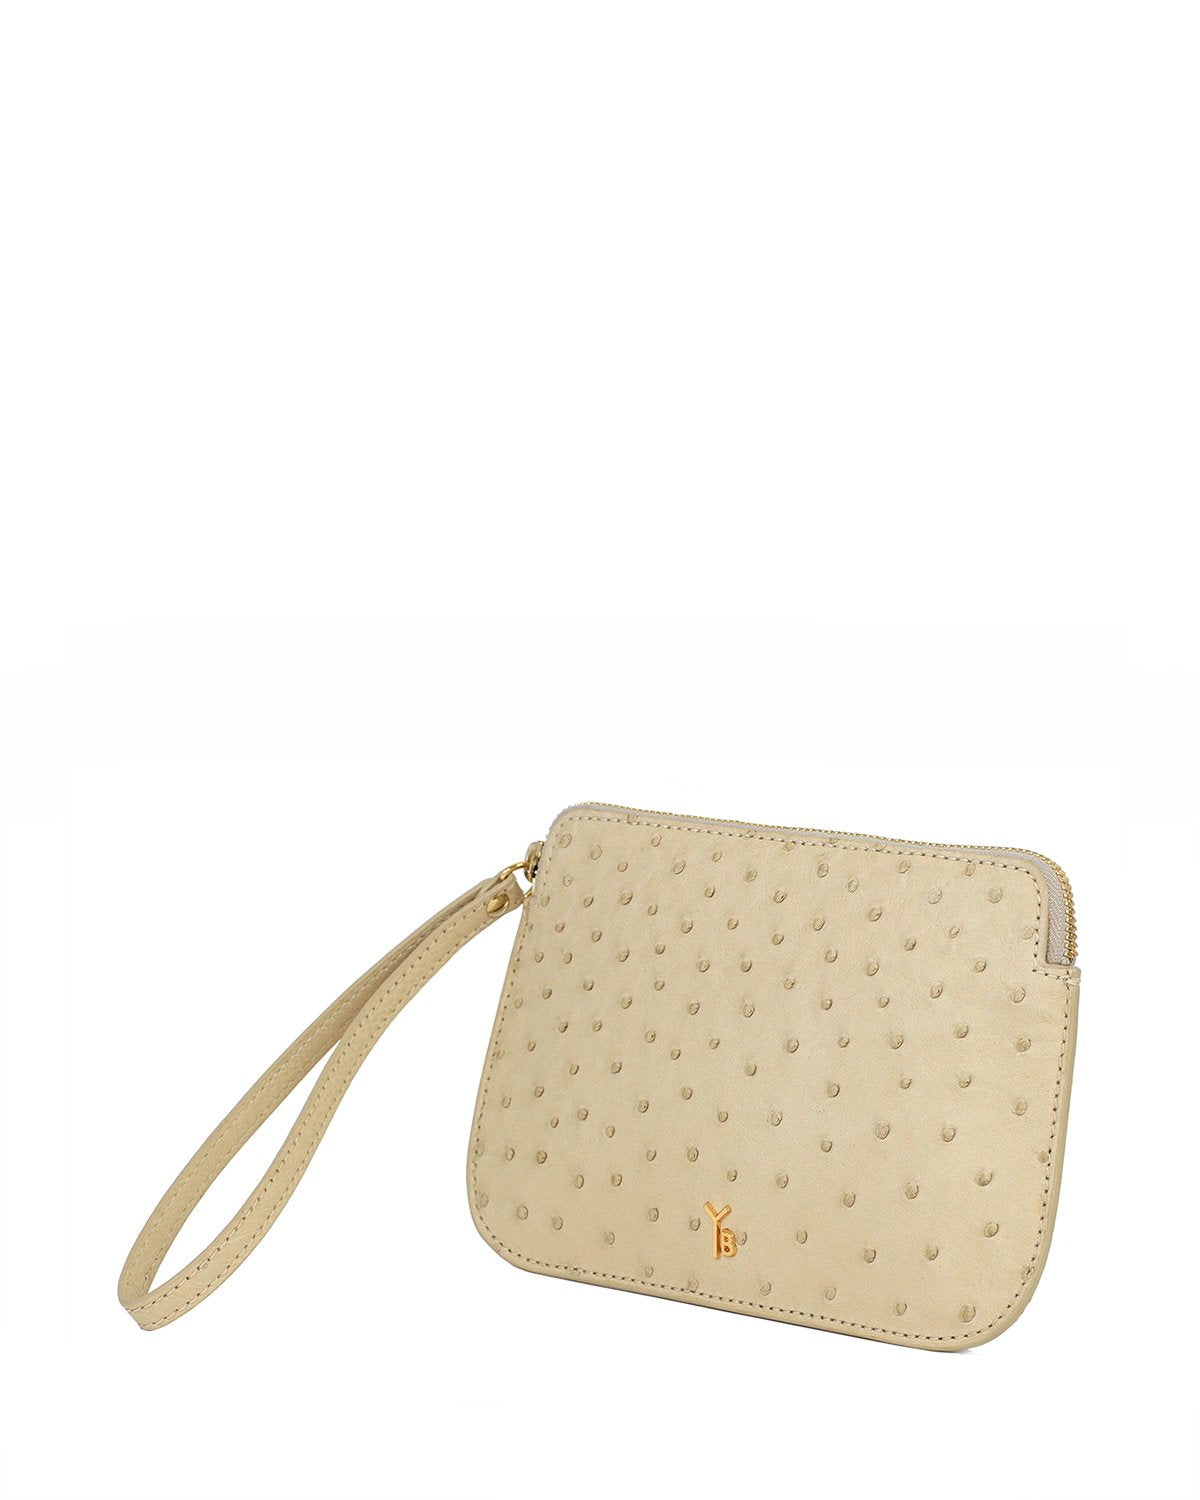 Ostrich Genuine Pouch with Wrislet Beige Yara Bashoor Angle View